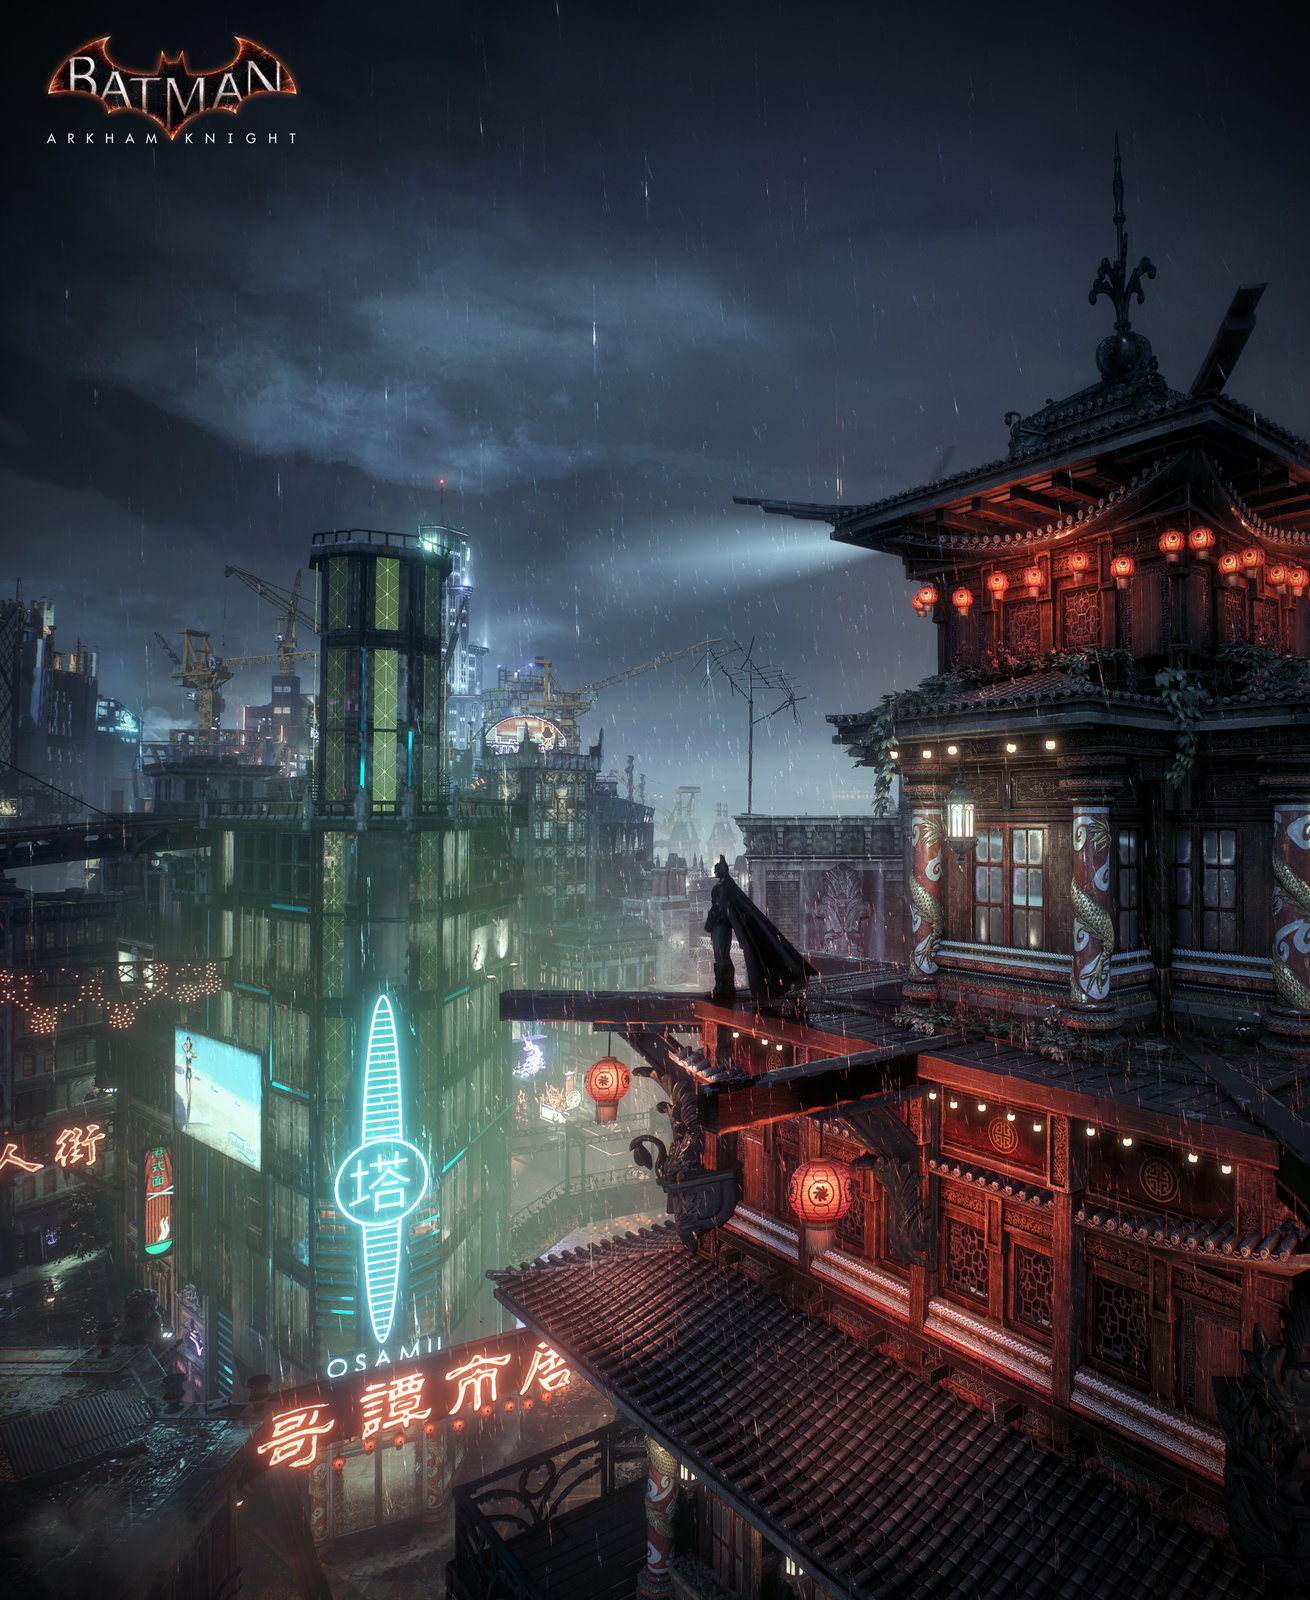 Batman Arkham Knight - Chinatown